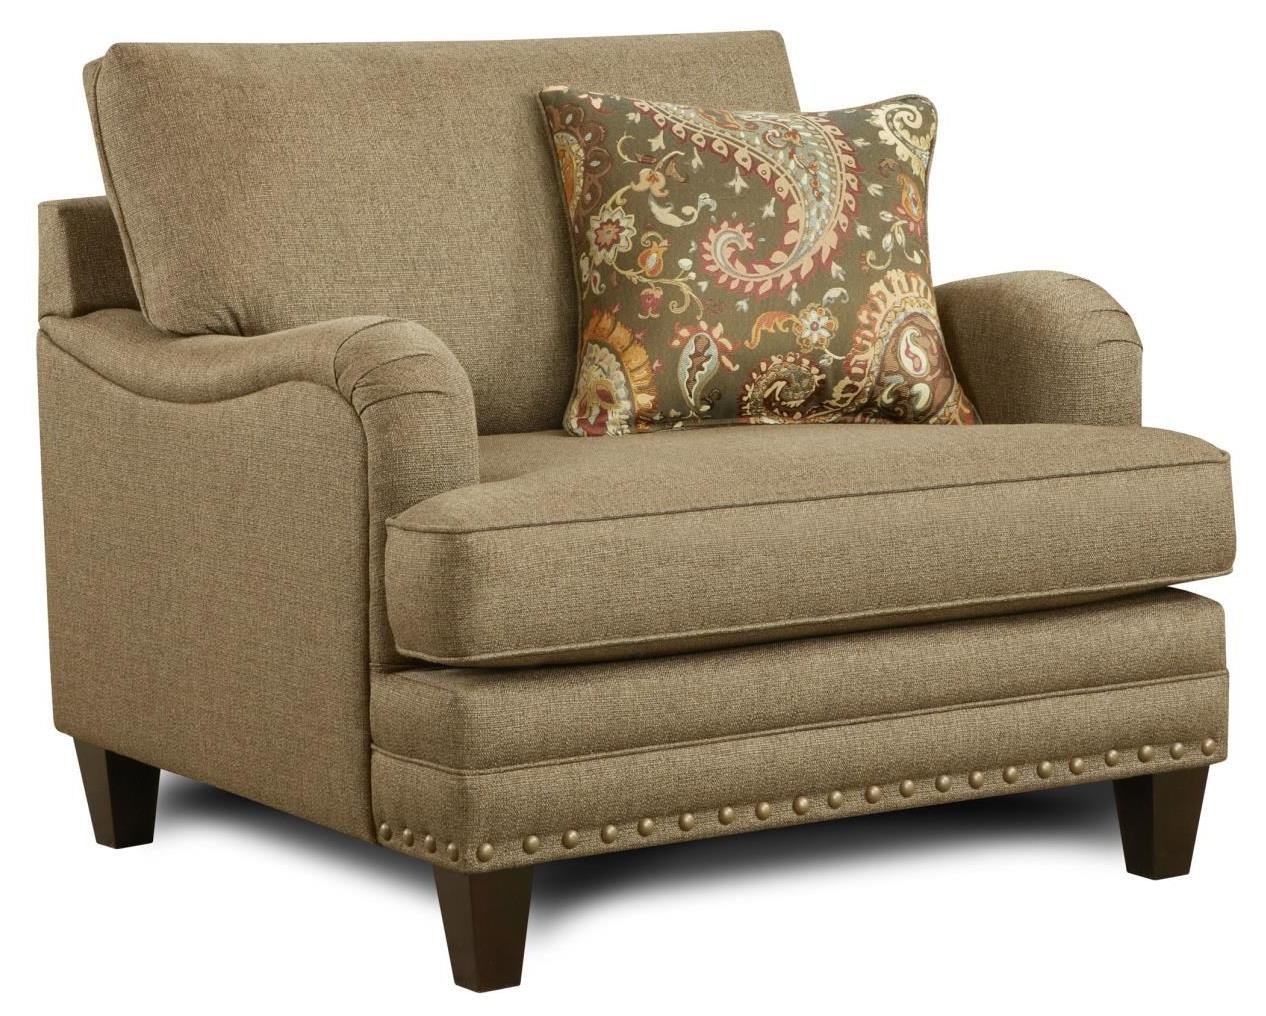 Fusion Furniture 5960 Chair - Item Number: 5962Hanson Cypress